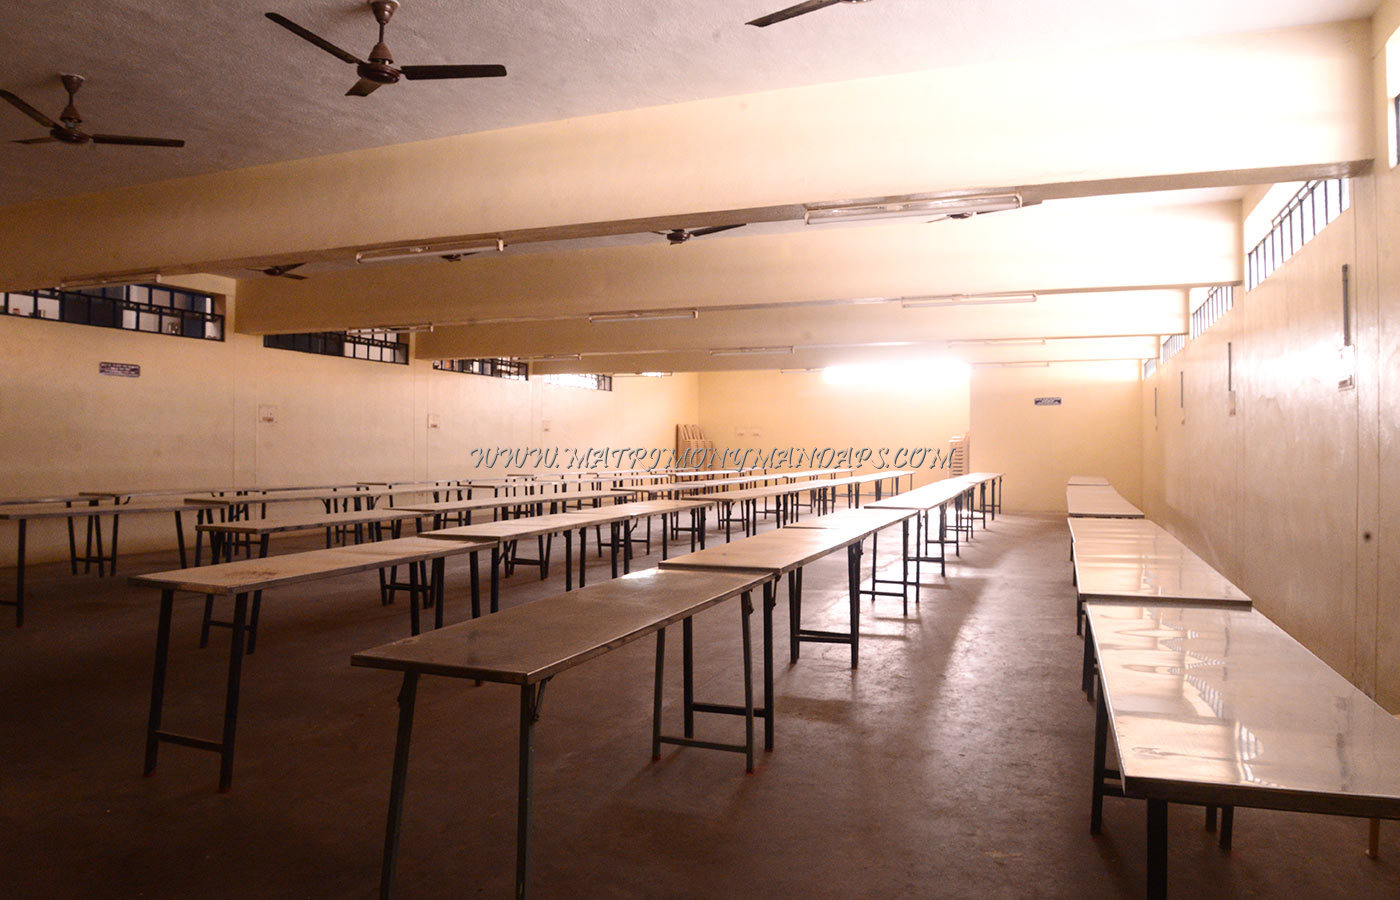 Find the availability of the Velmayil Cultural Mahal Marutham Hall in Vadavalli, Coimbatore and avail special offers